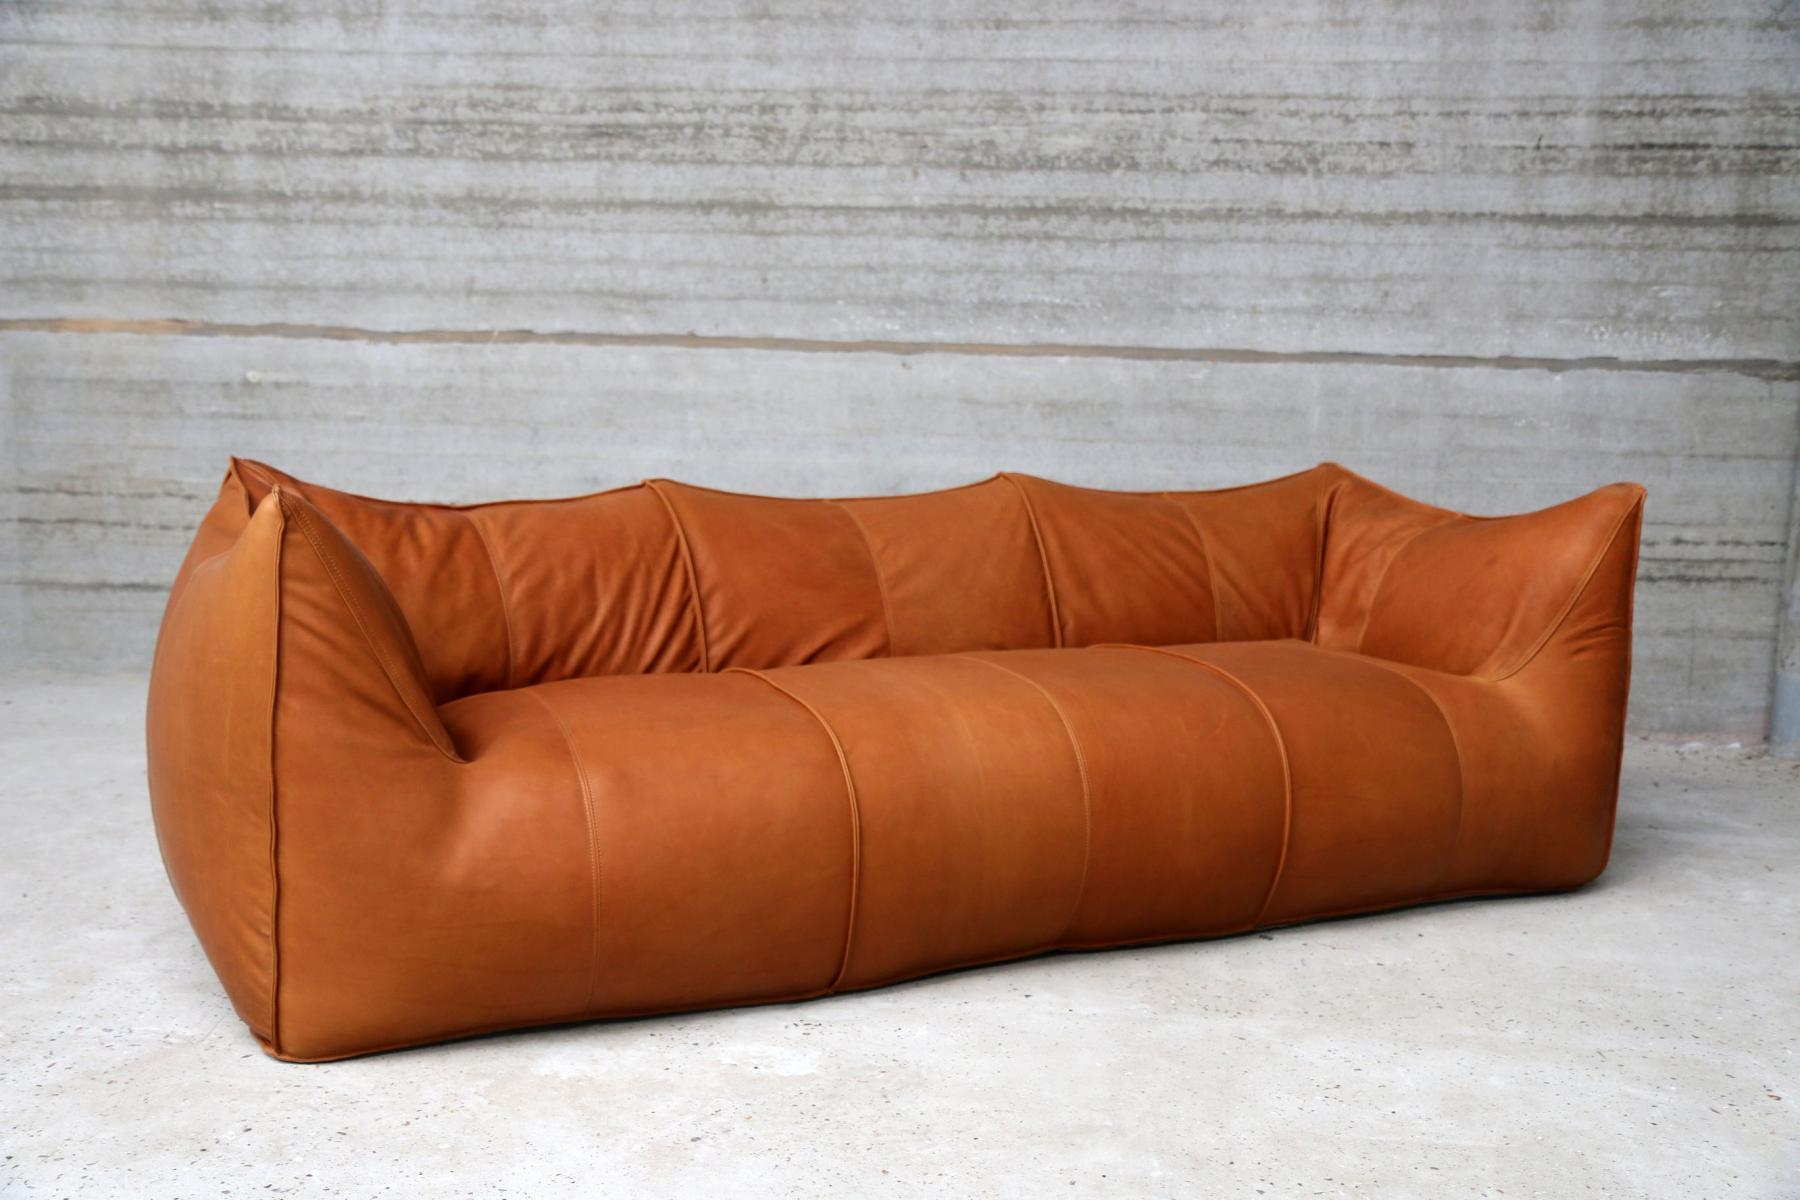 Vintage Bambole Three Seater Sofamario Bellini For B&b Italia Intended For Bellini Couches (Image 16 of 20)